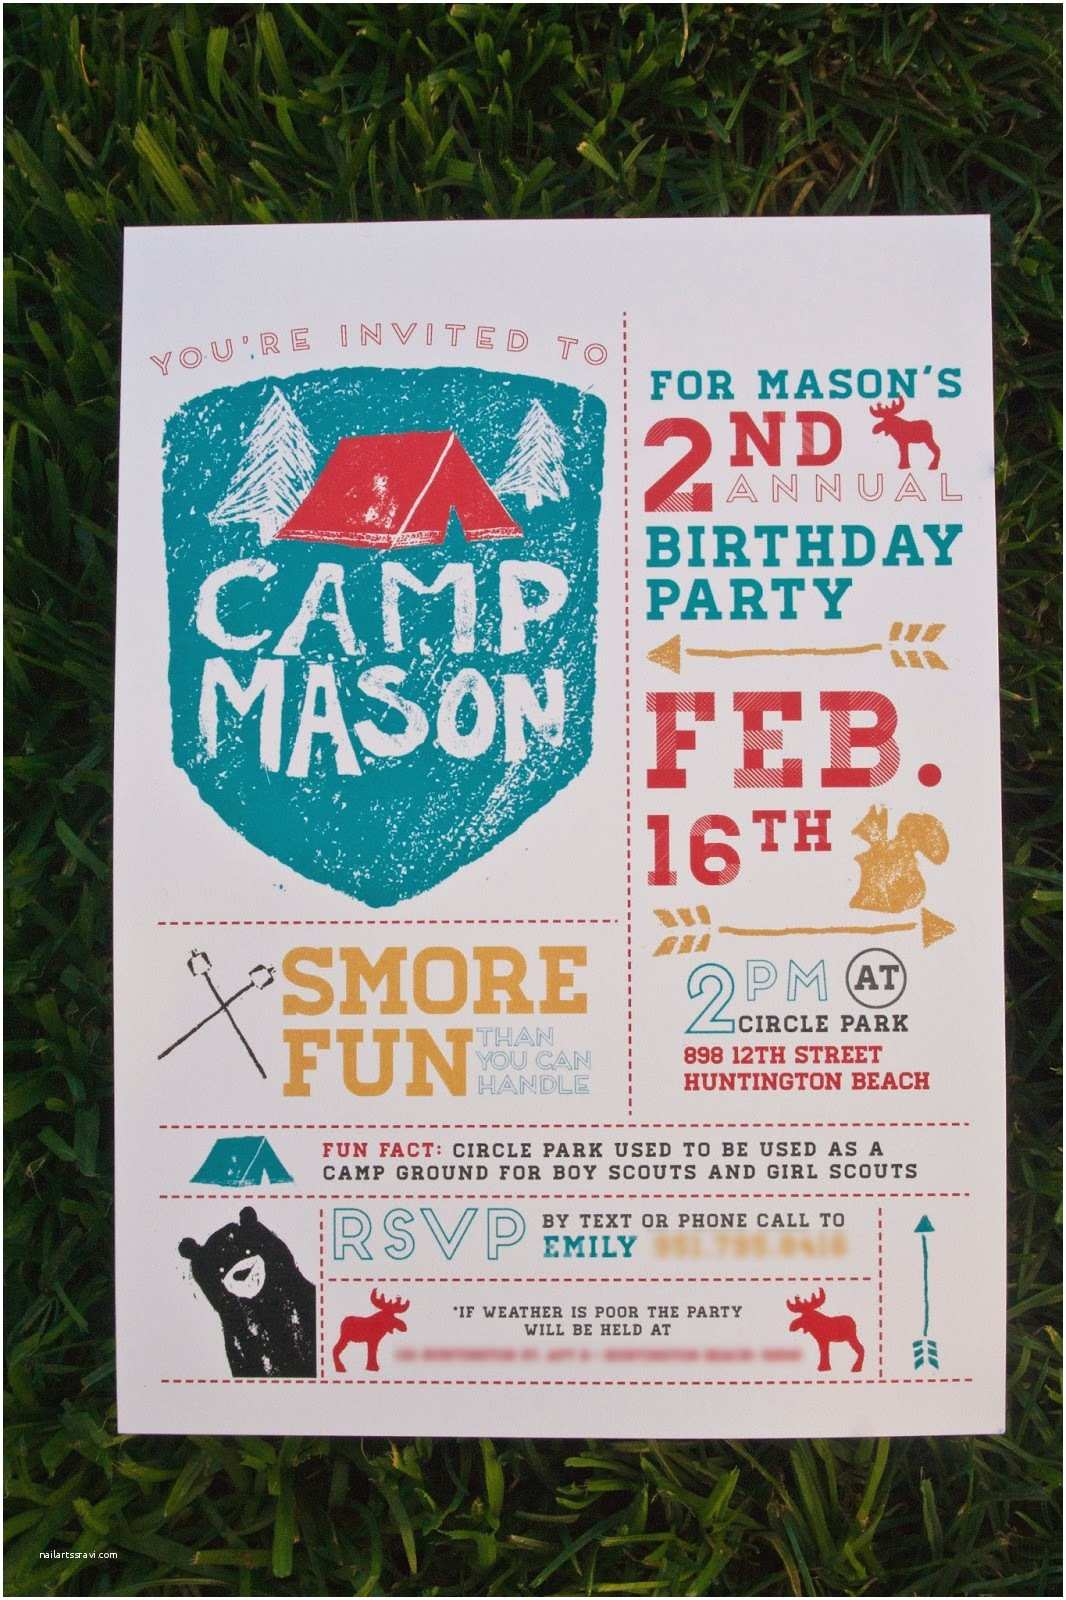 Design Party Invitations Emily Camp Design Design Fancy Camping Party Invitation